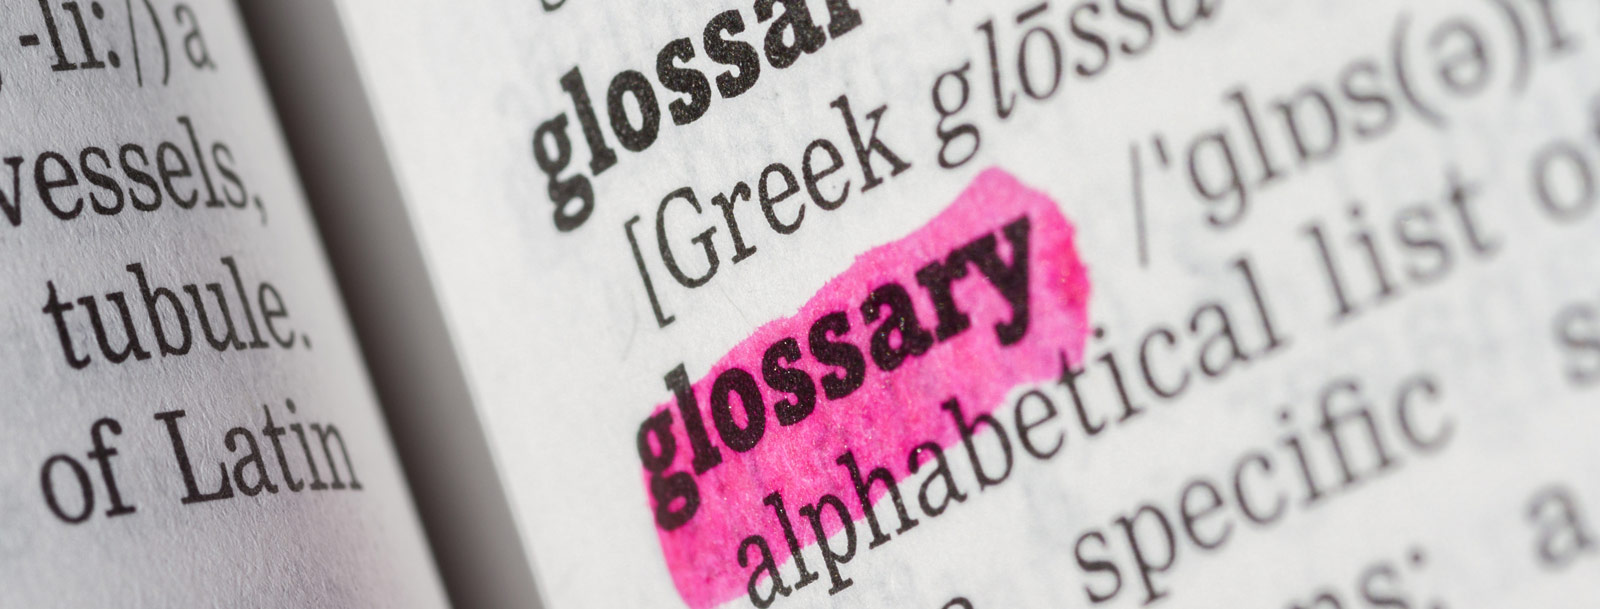 A glossary to help you understand the terminology at the senior living in Olathe